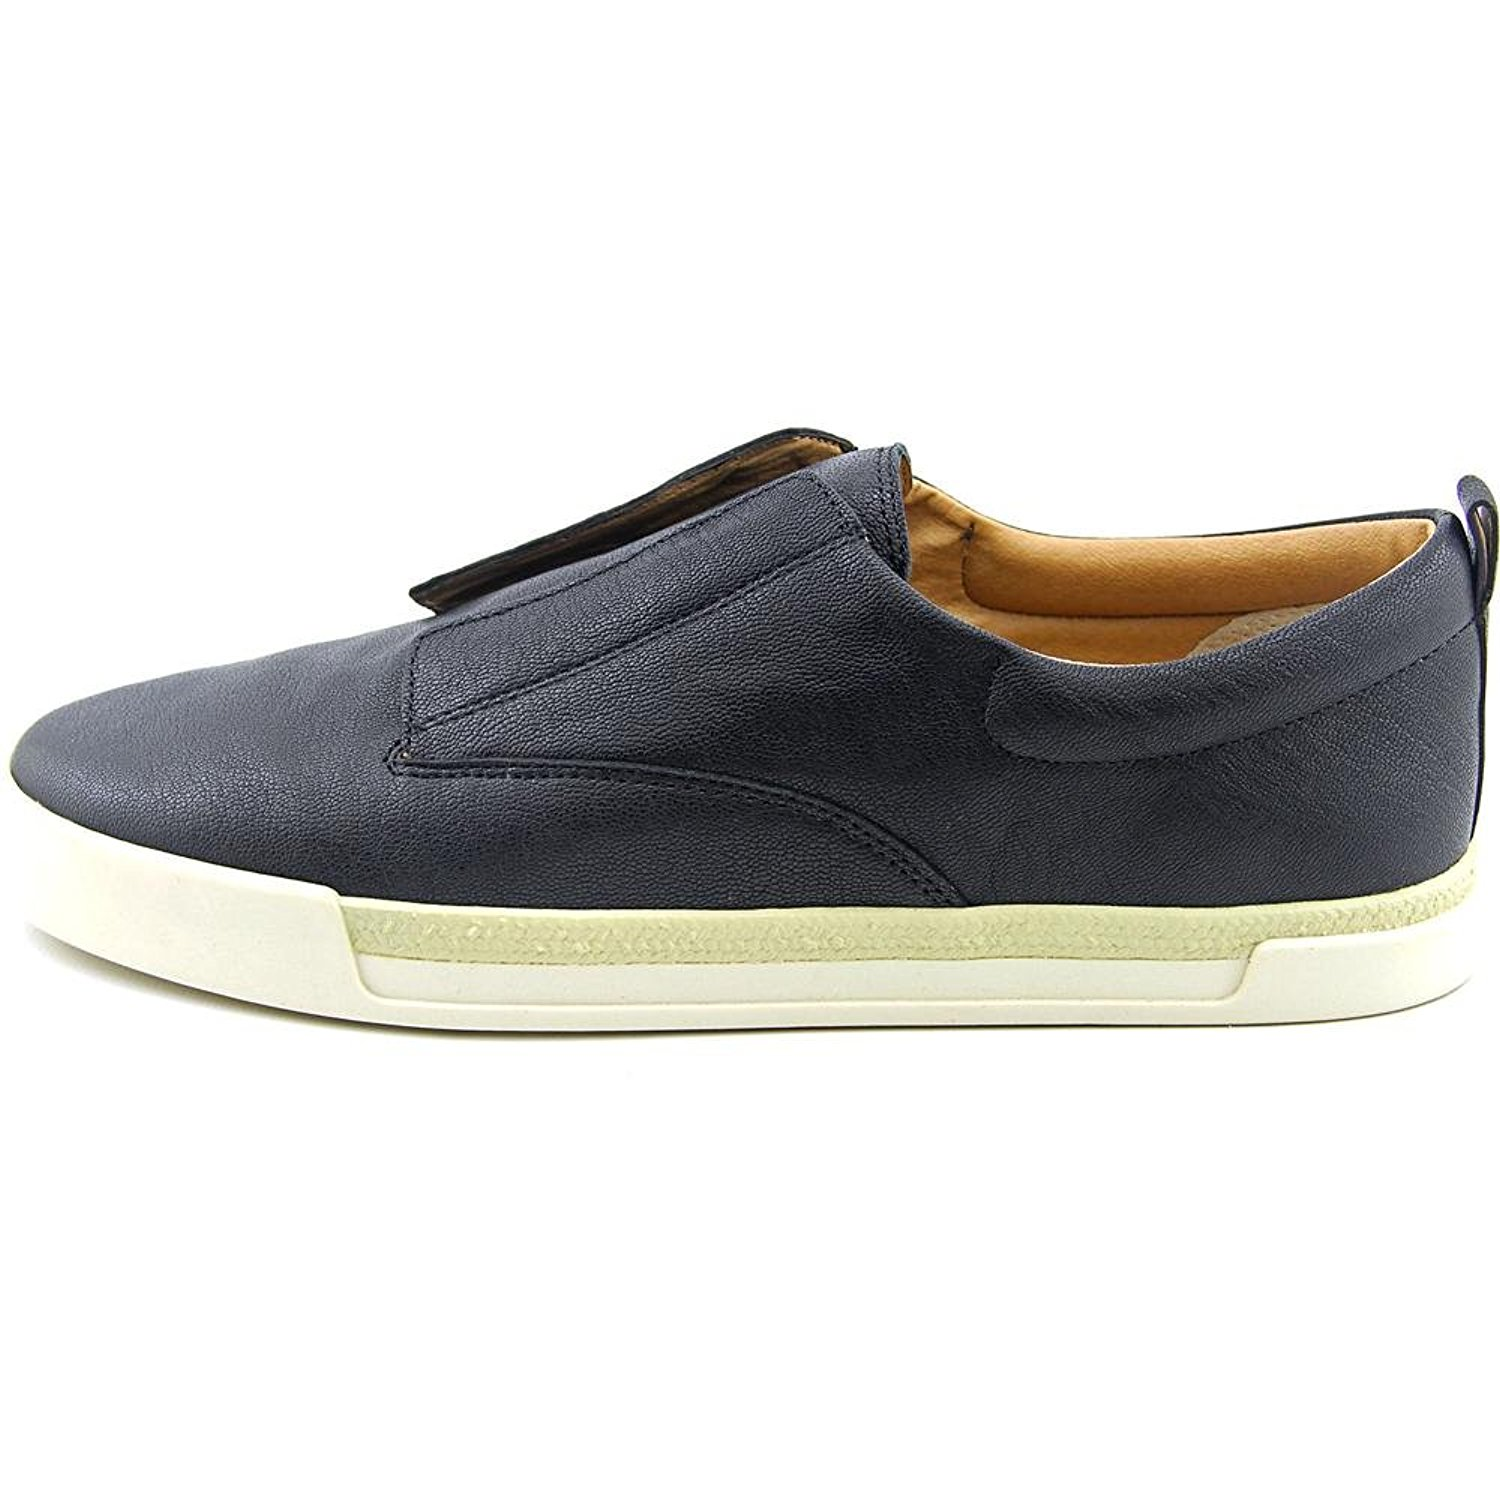 Lucky Brand Womens Mandalay Leather Low Top Slip On